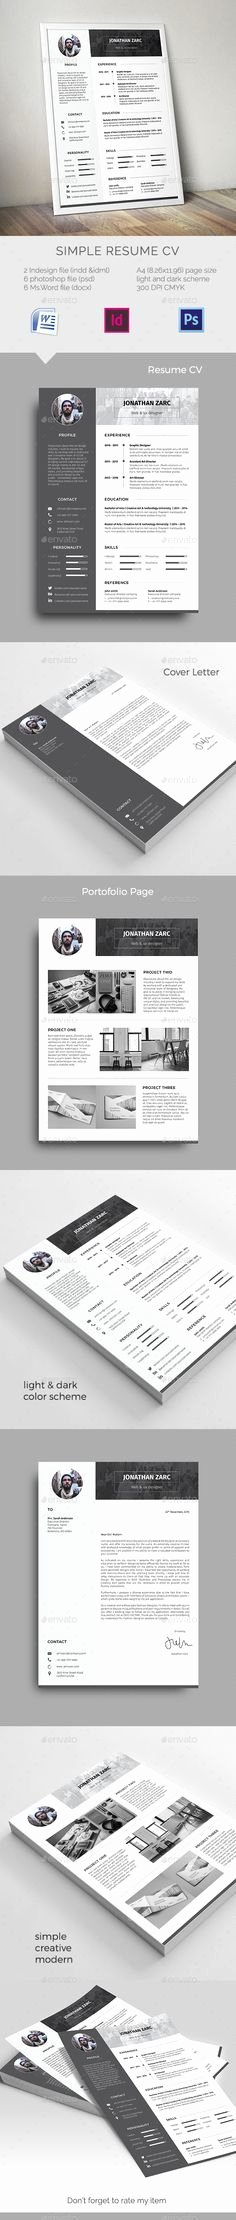 Brag Book Cover Page Template Lovely Design Cover Letters and Resume Cover Letters On Pinterest